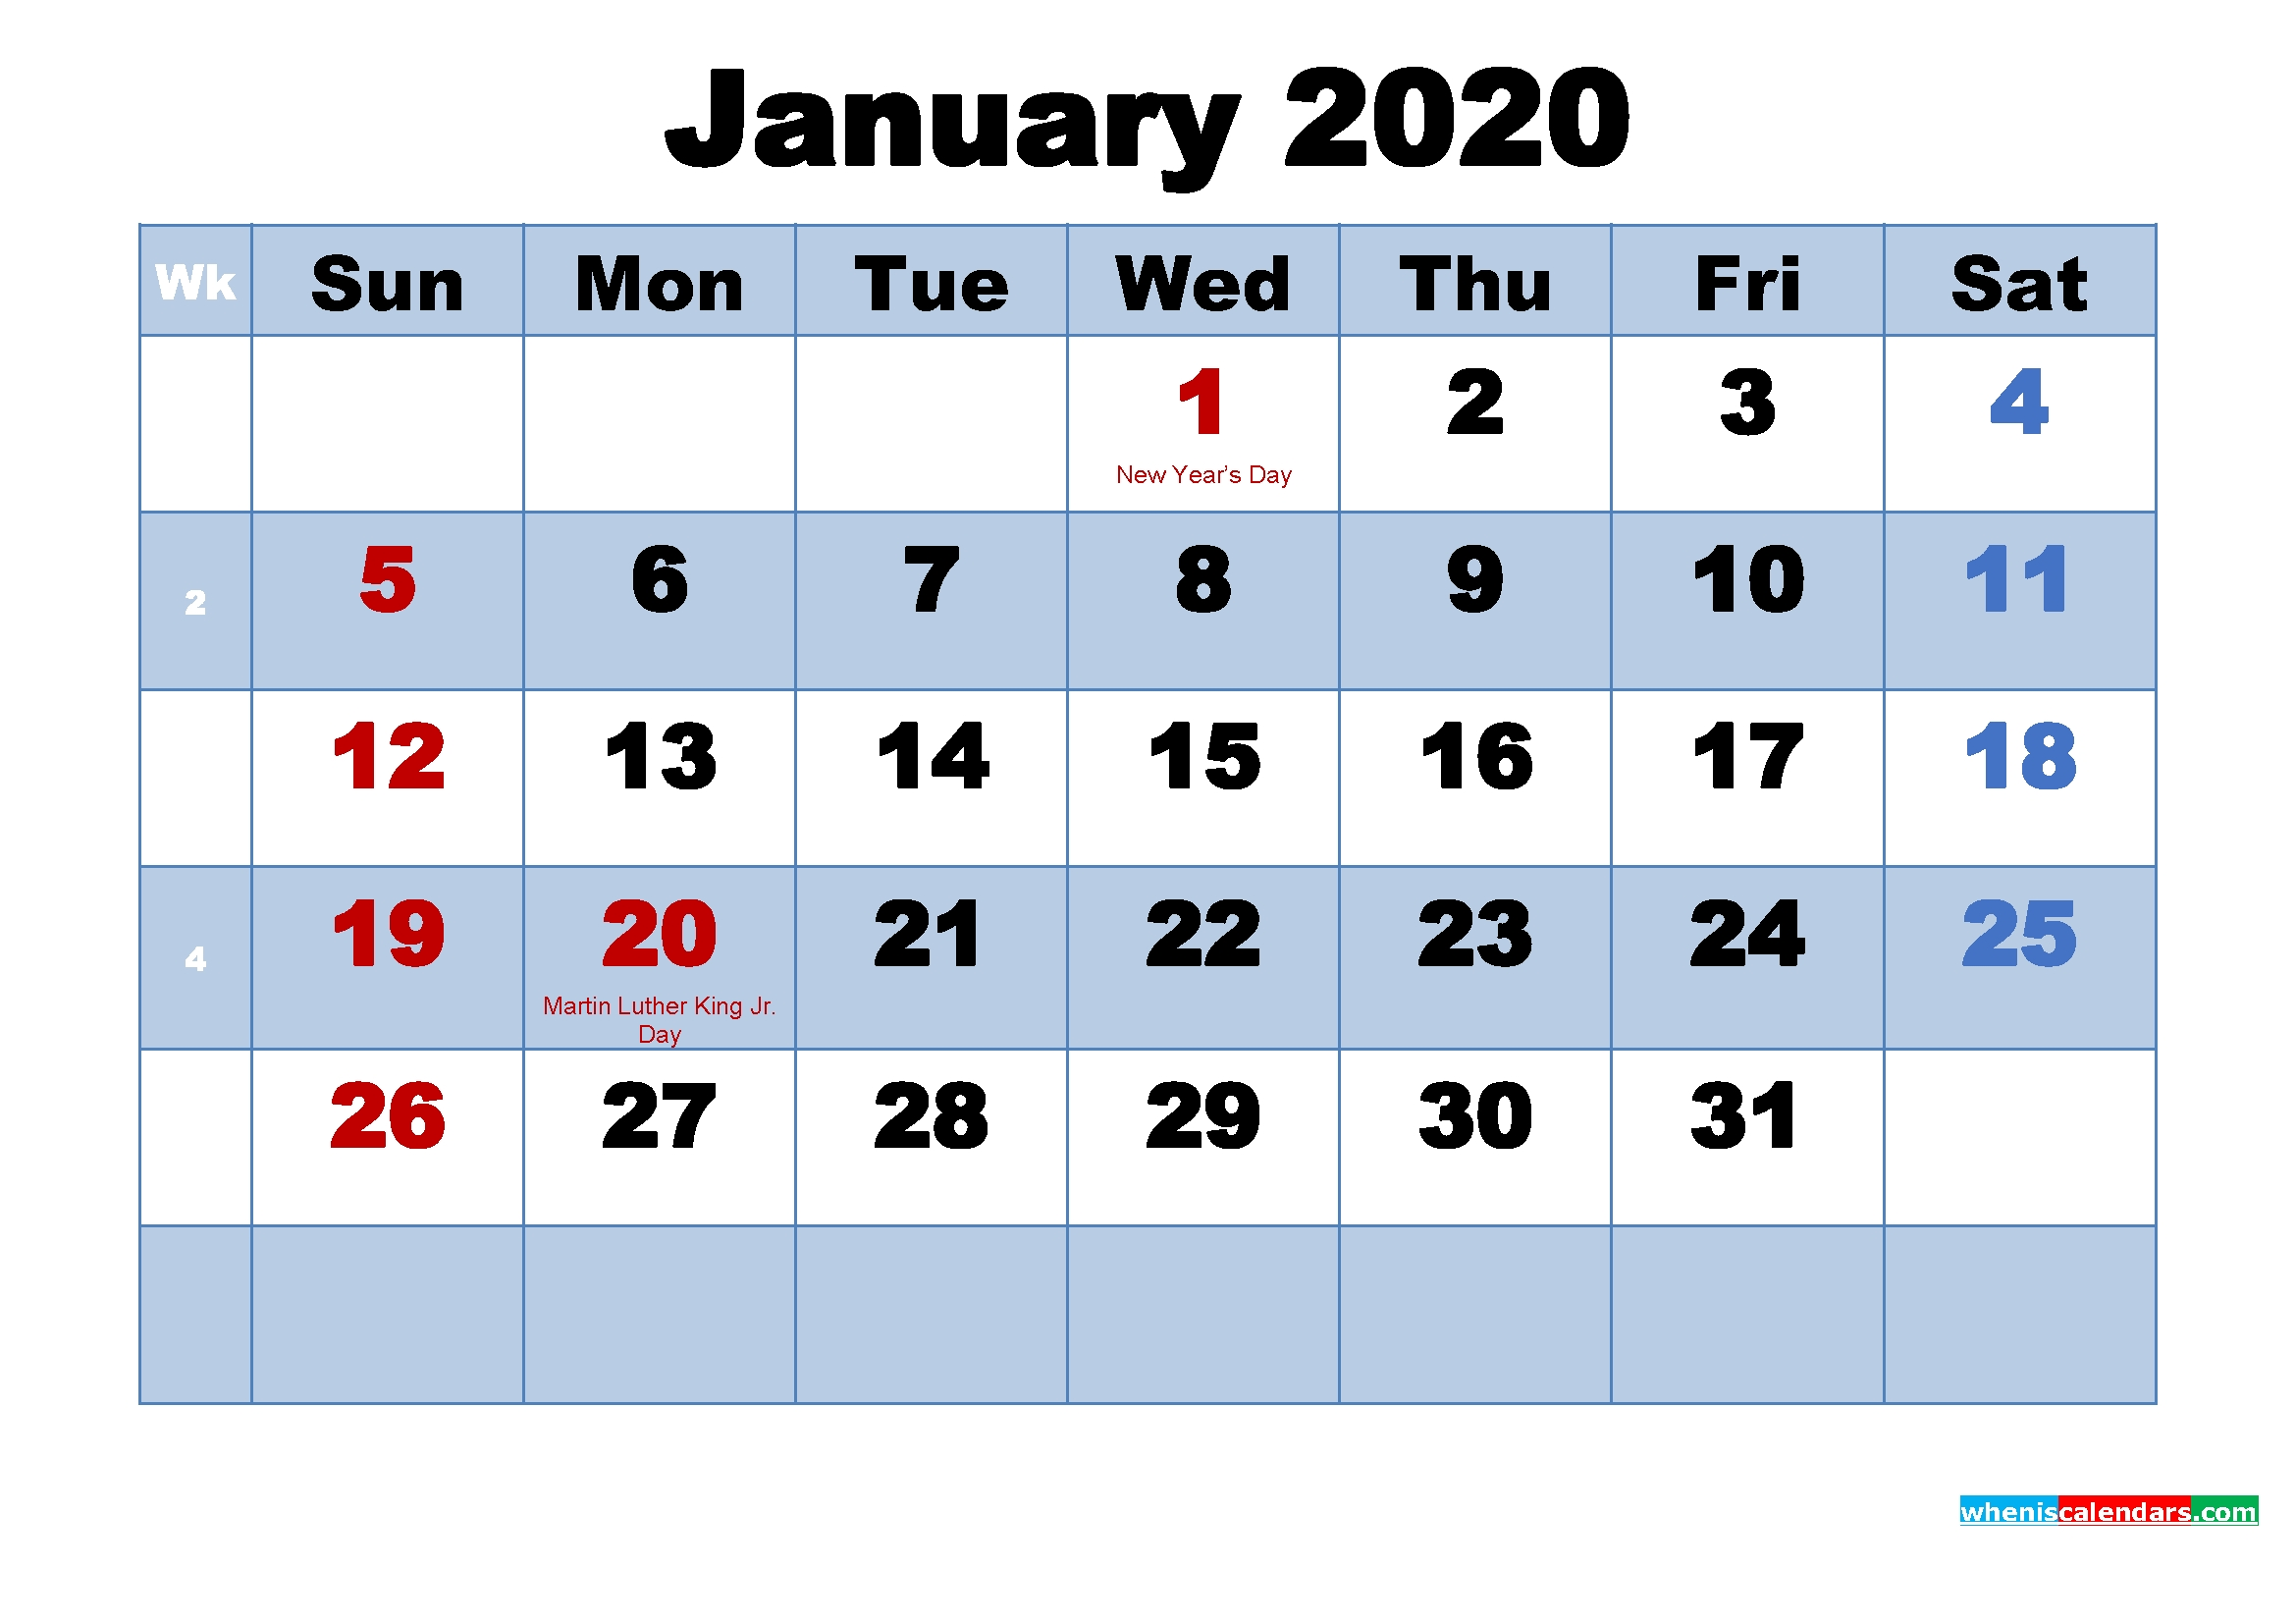 Planning Be Easy With Printable 2020 Monthly Calendar  Free Monthly Calendar Print Out 2020 With Holidays